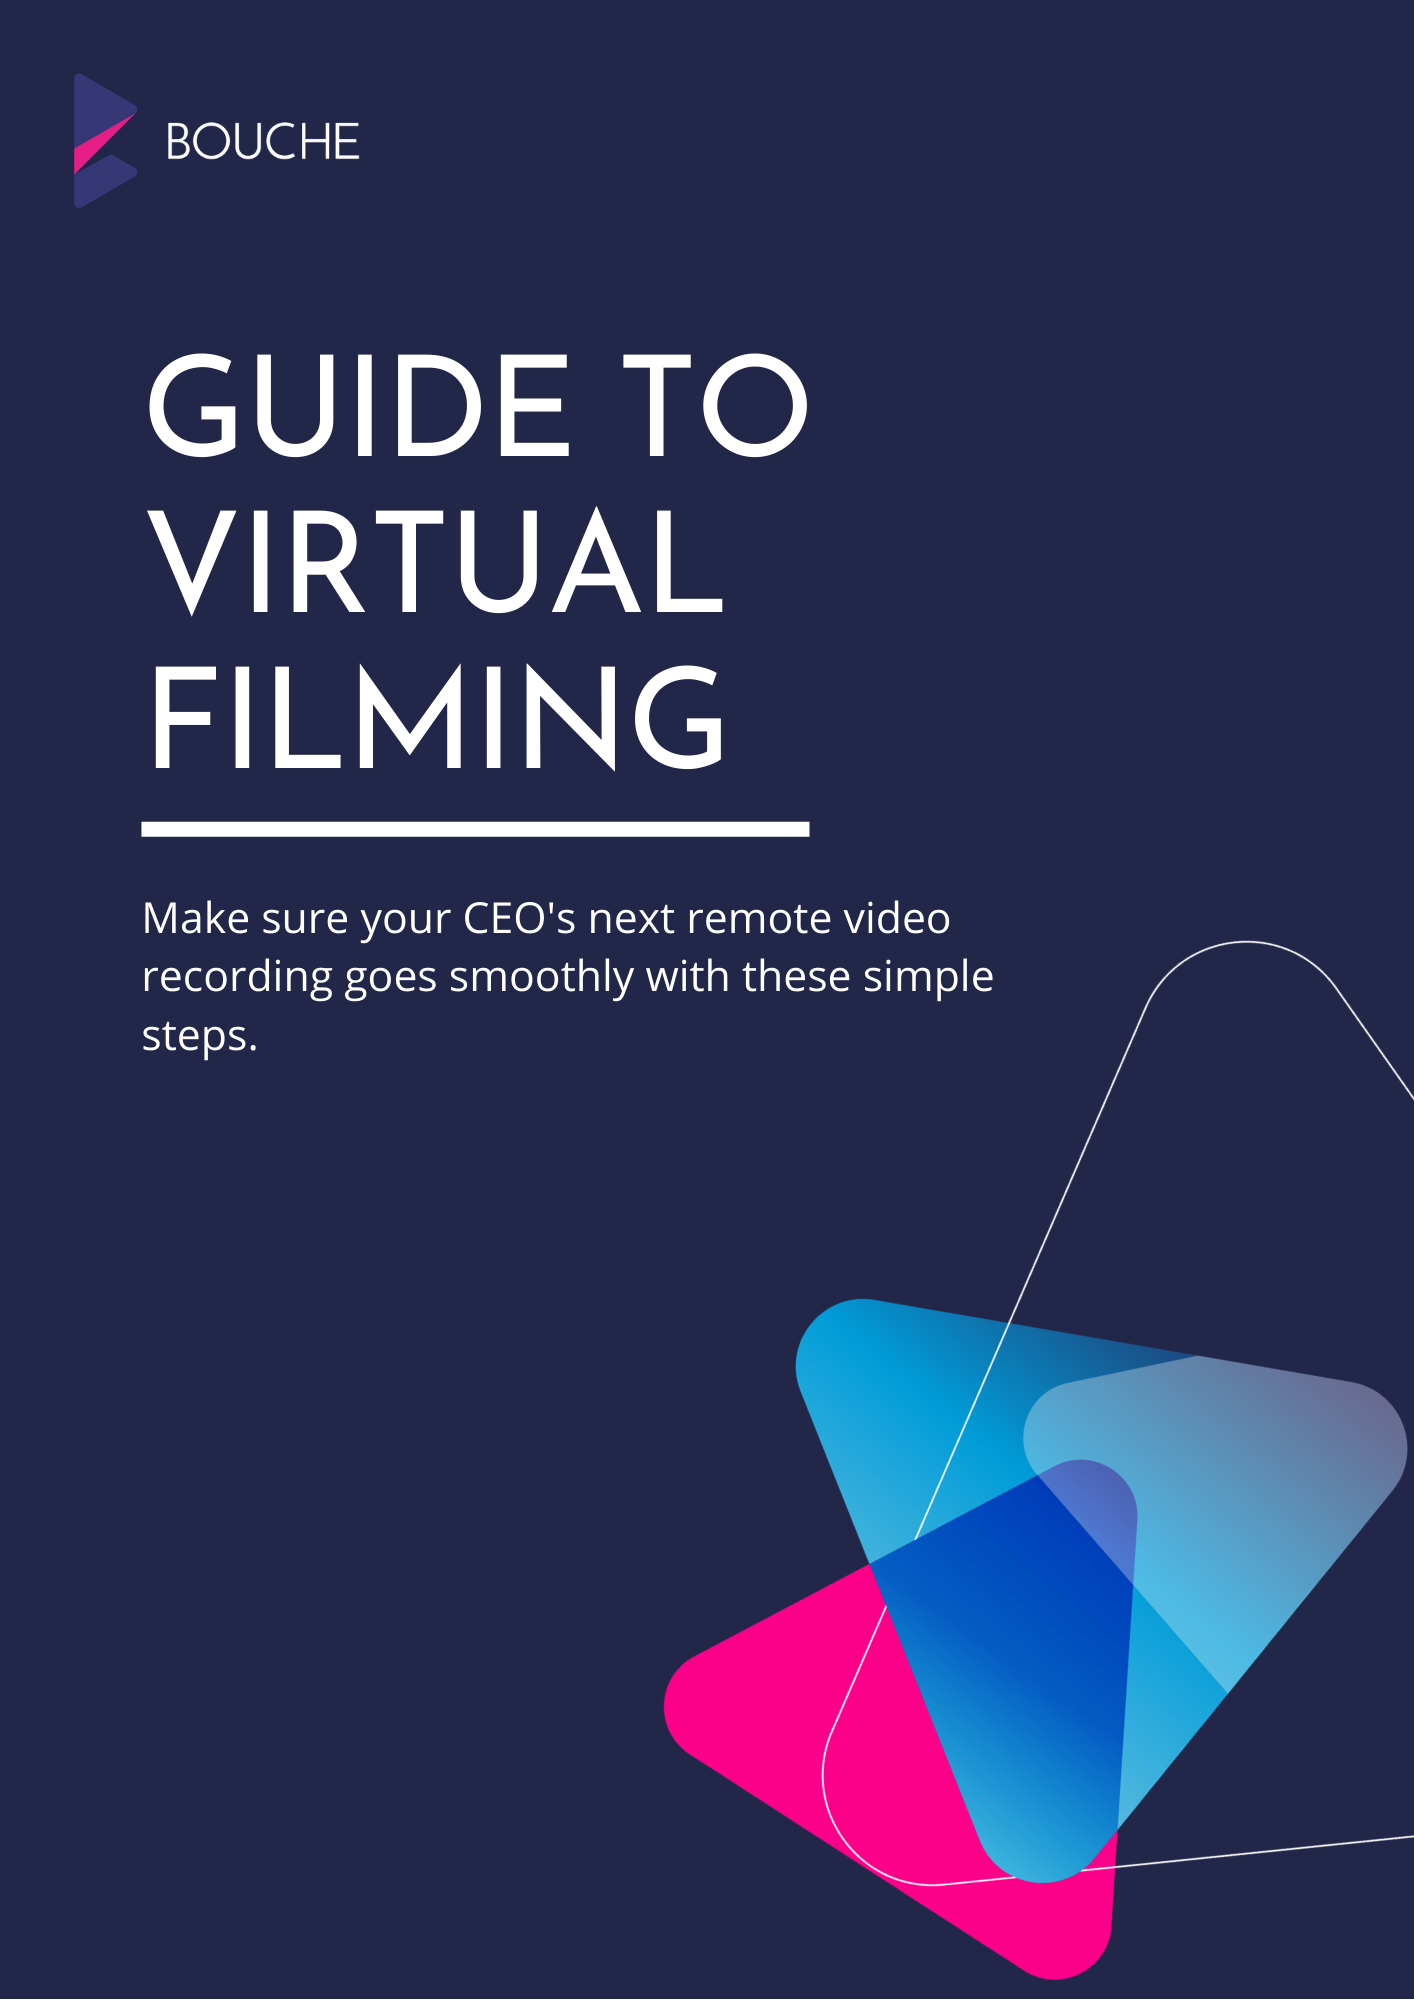 Receive your free guide to virtual filming